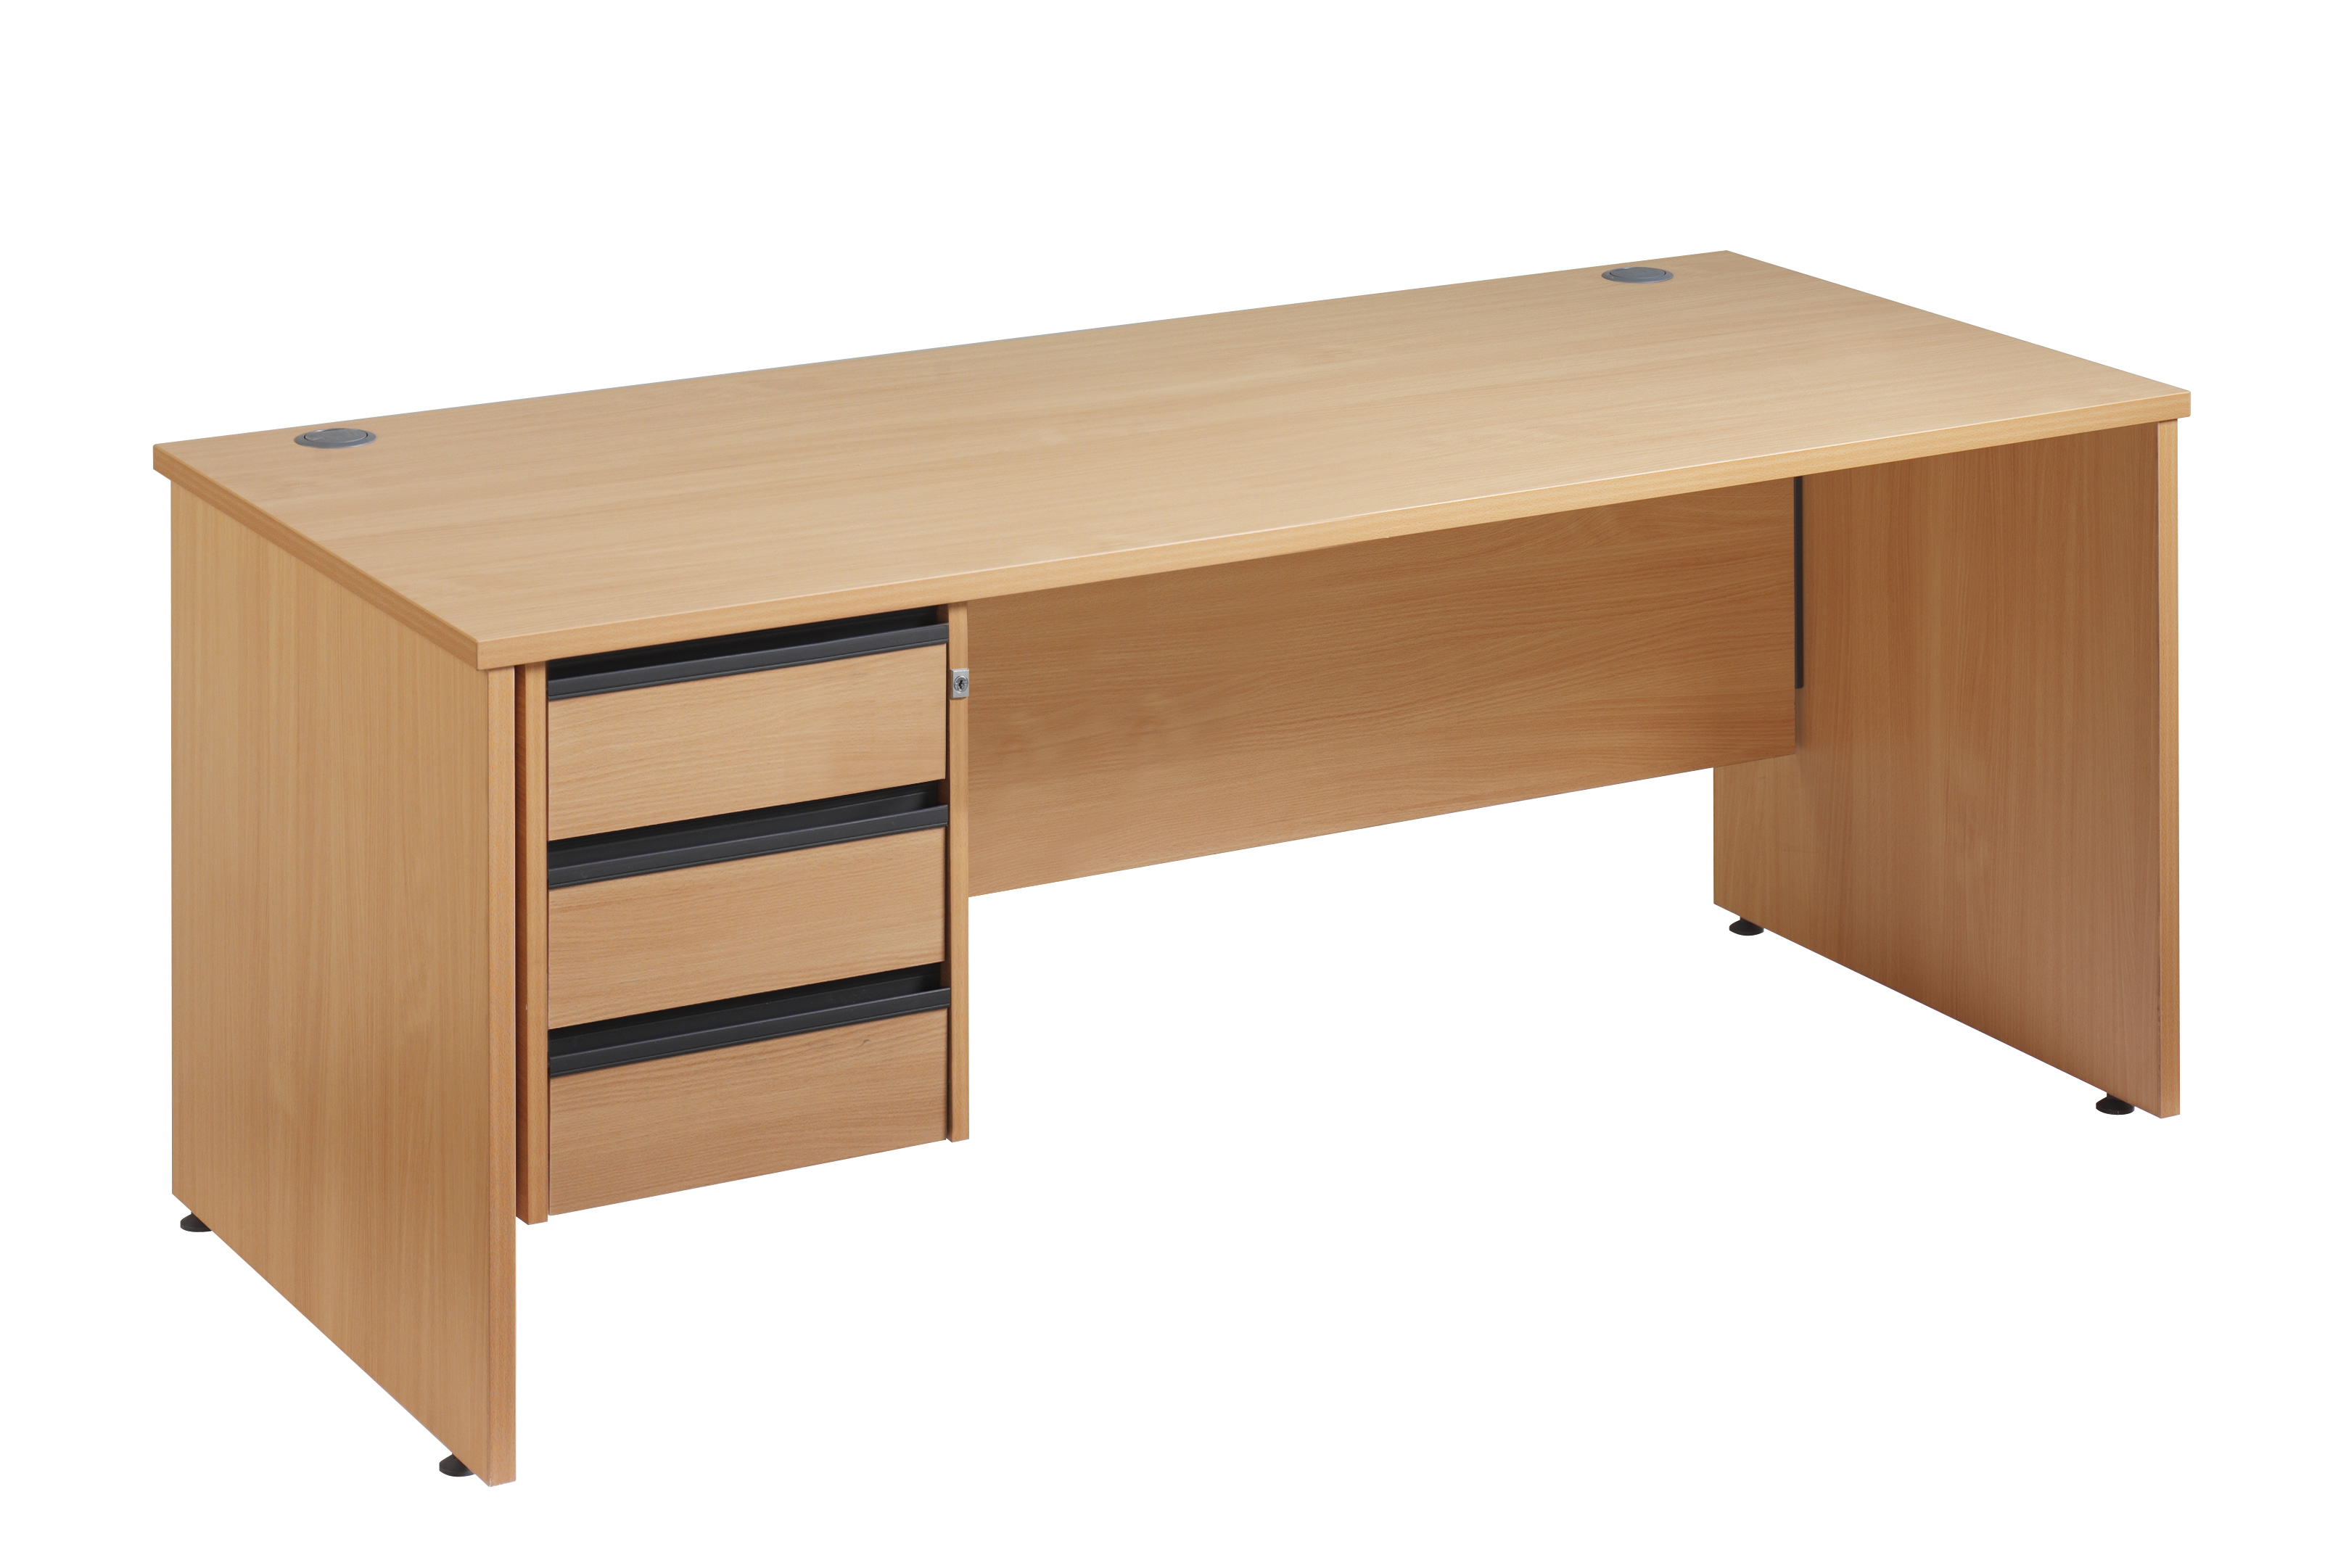 office desks | keko furniture